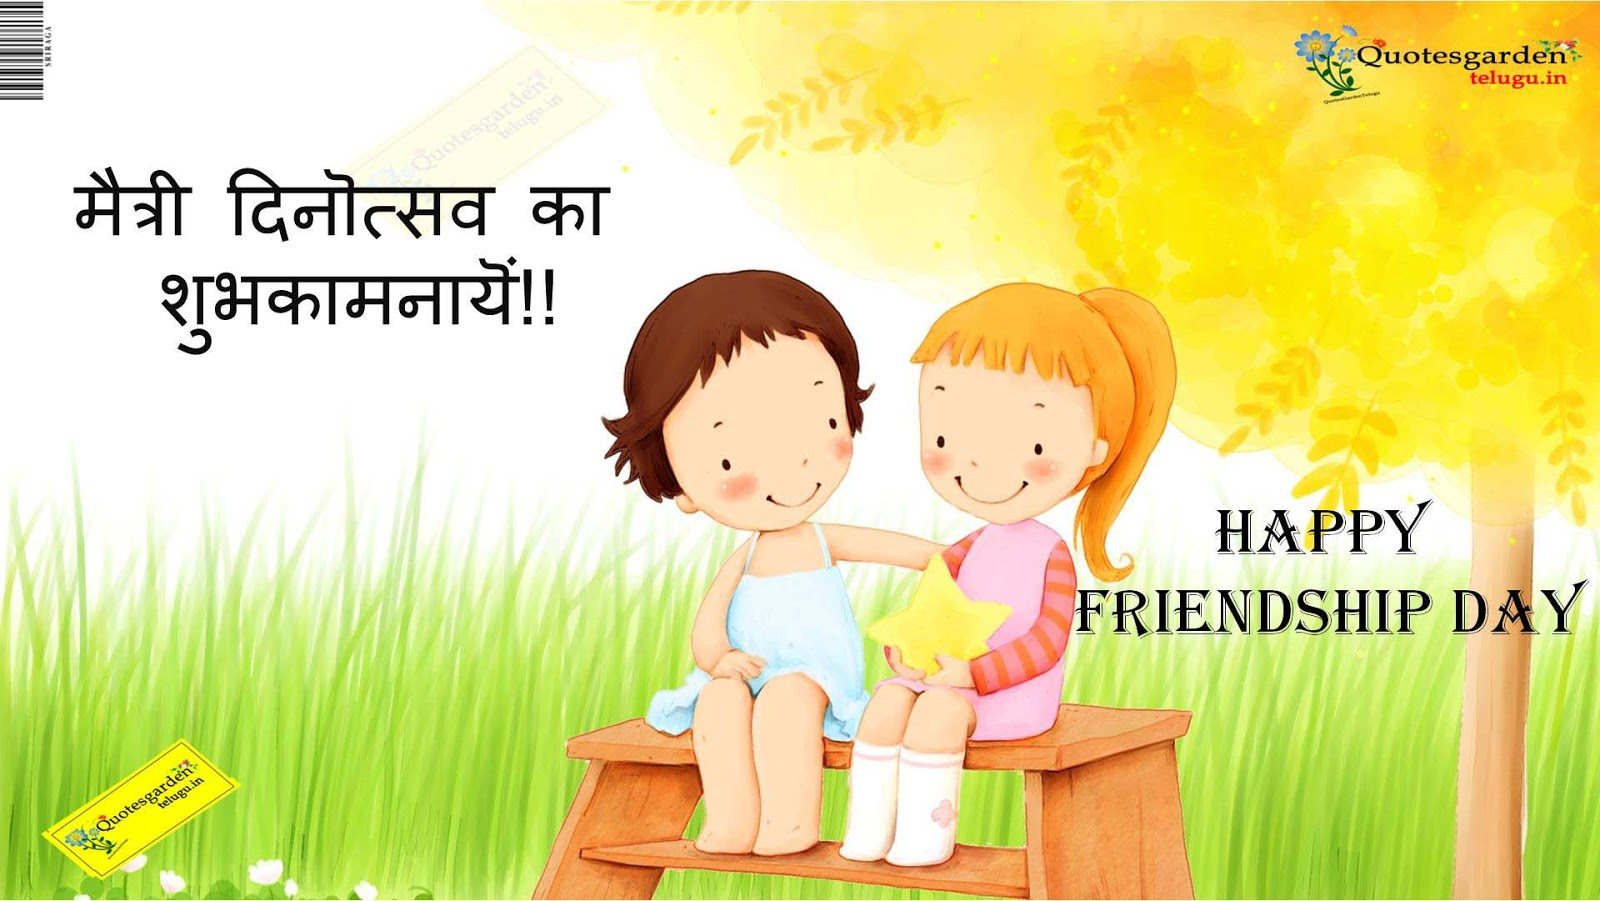 Friendship day hindi quotes wallpapers images wishes greetings friendship day hindi quotes wallpapers images wishes greetings pictures photos in hindi 746 kristyandbryce Image collections